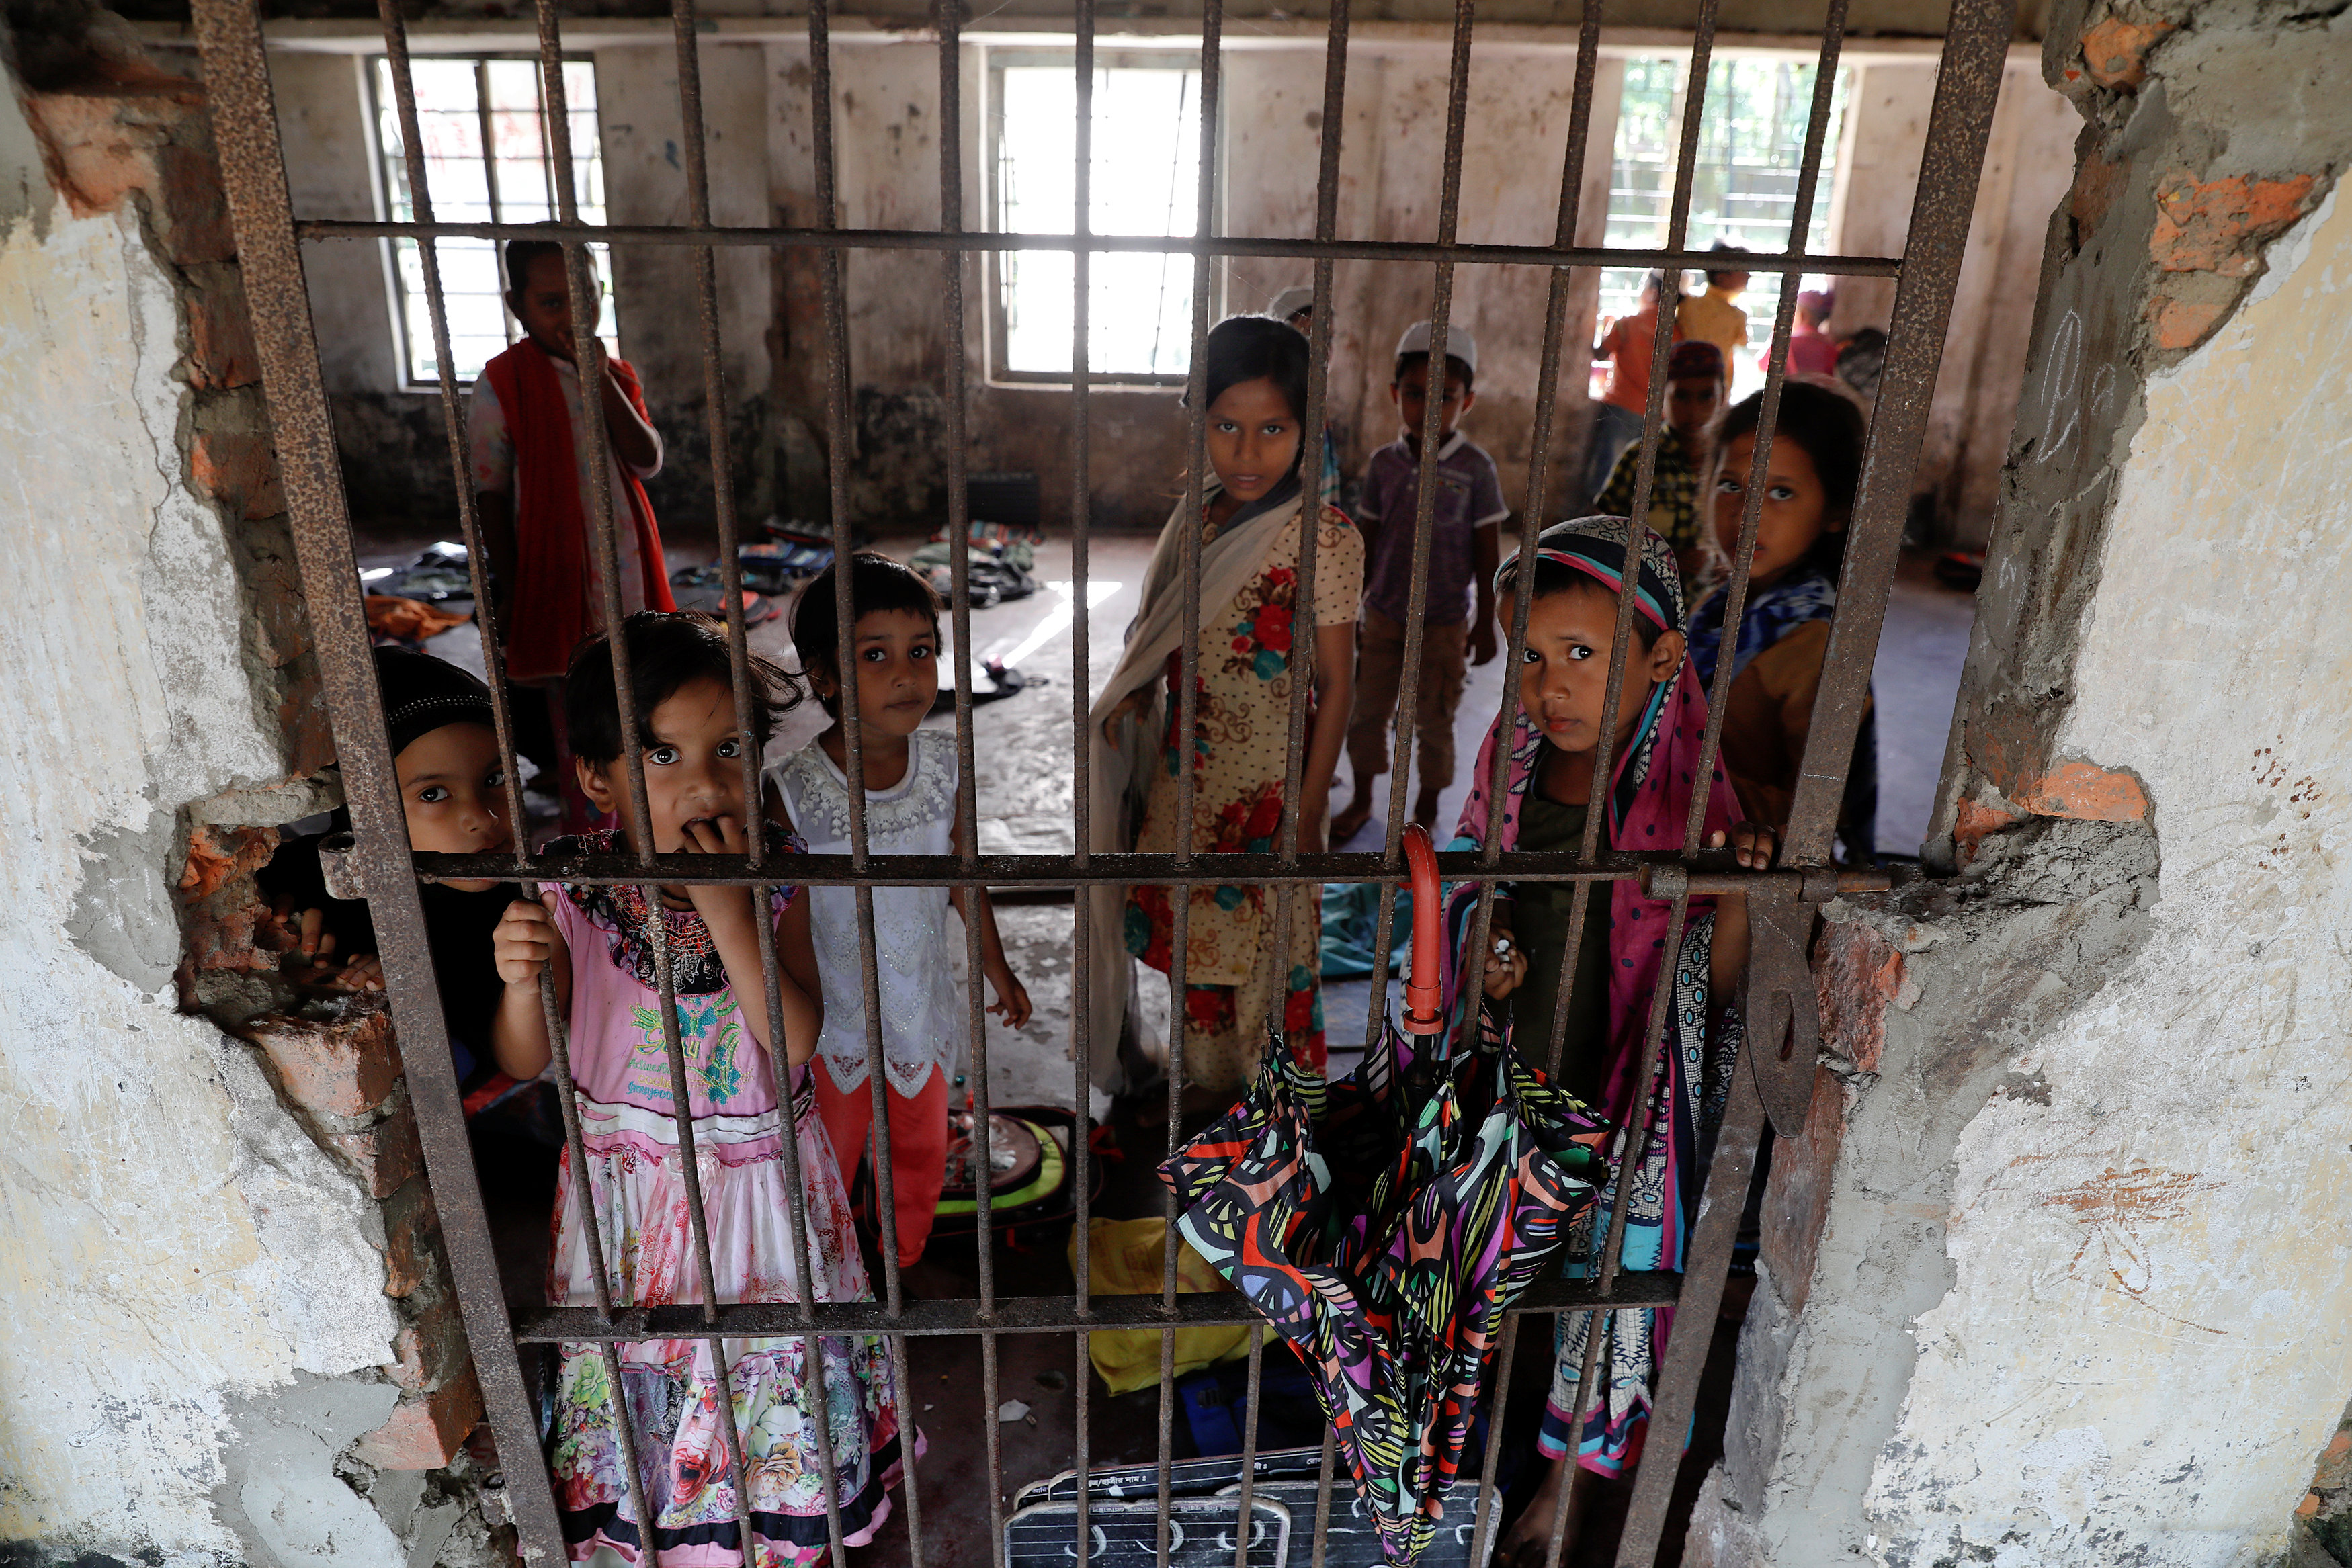 Students of a local madrasa watch from inside their classroom as bodies of Rohingya refugees from Myanmar, who were killed when their boat capsized on the way to Bangladesh, are brought to their school in Shah Porir Dwip, in Teknaf, near Cox's Bazar in Bangladesh, October 9, 2017.